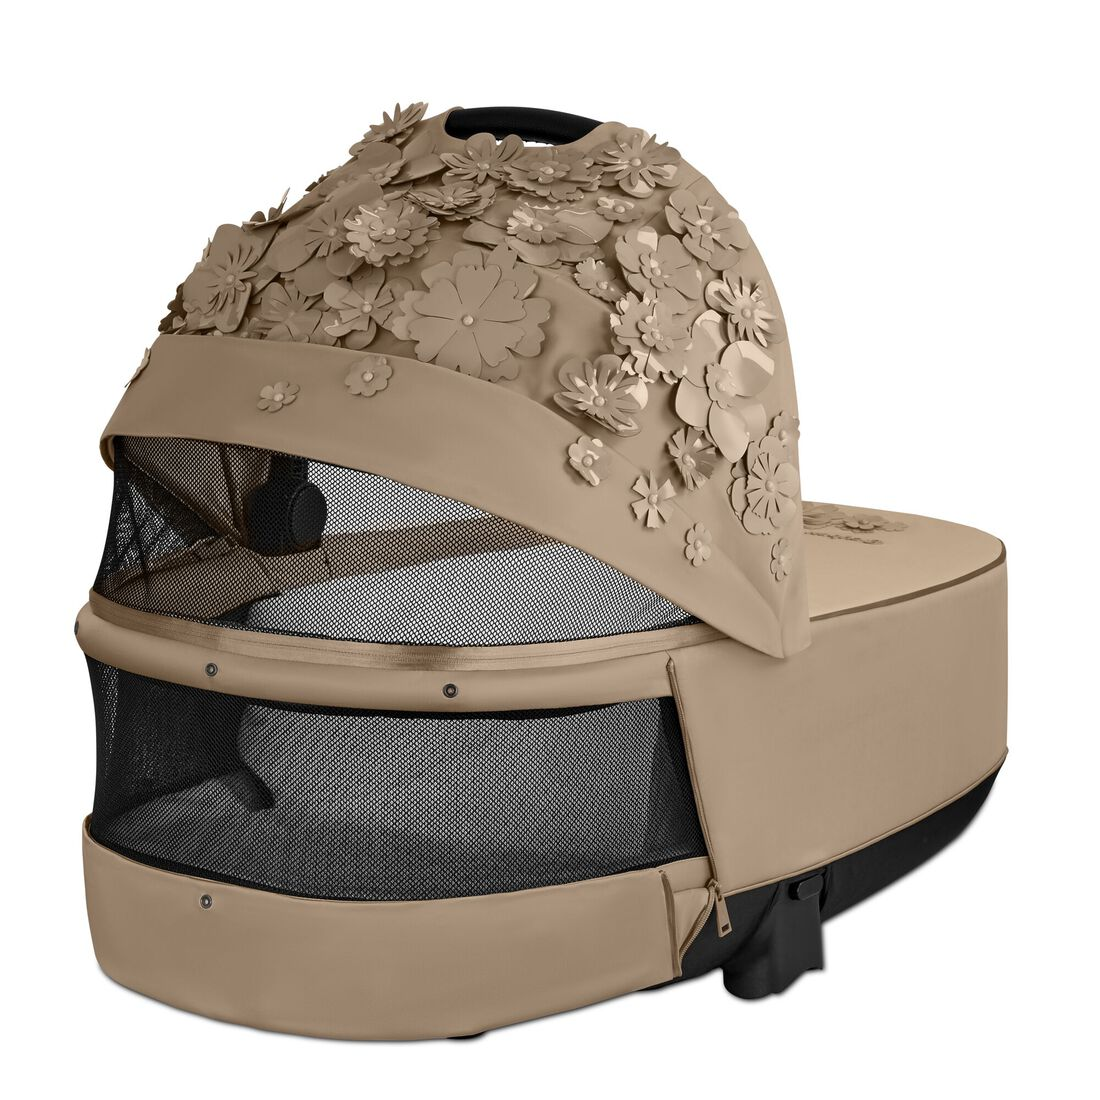 CYBEX Priam Lux Carry Cot - Nude Beige in Nude Beige large image number 4